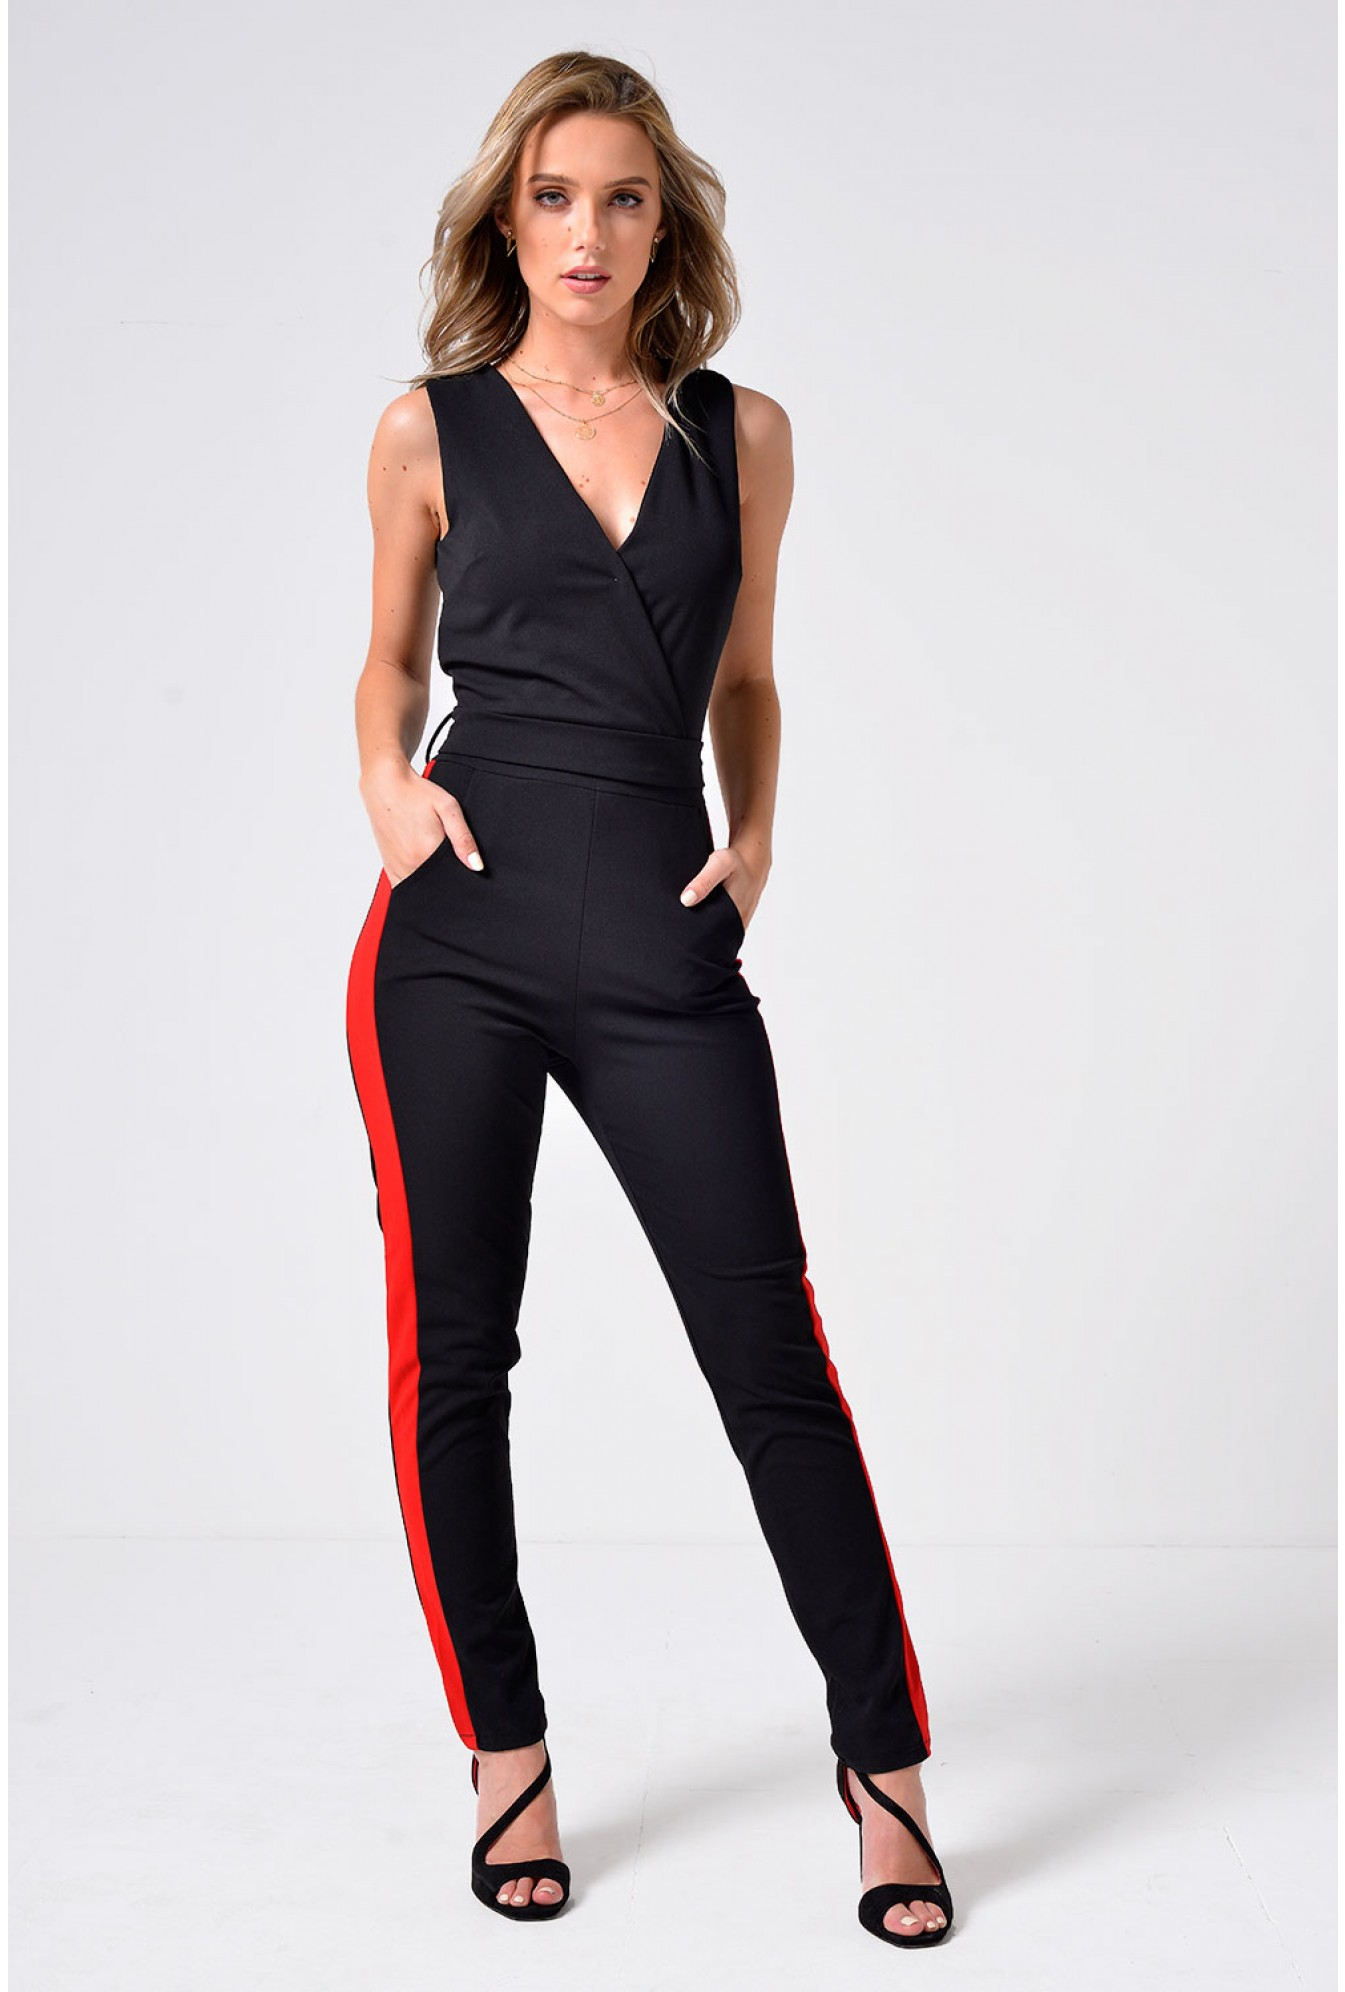 a951260c9dc3 Wal G Sienna Side Stripe Plunge Jumpsuit in Black